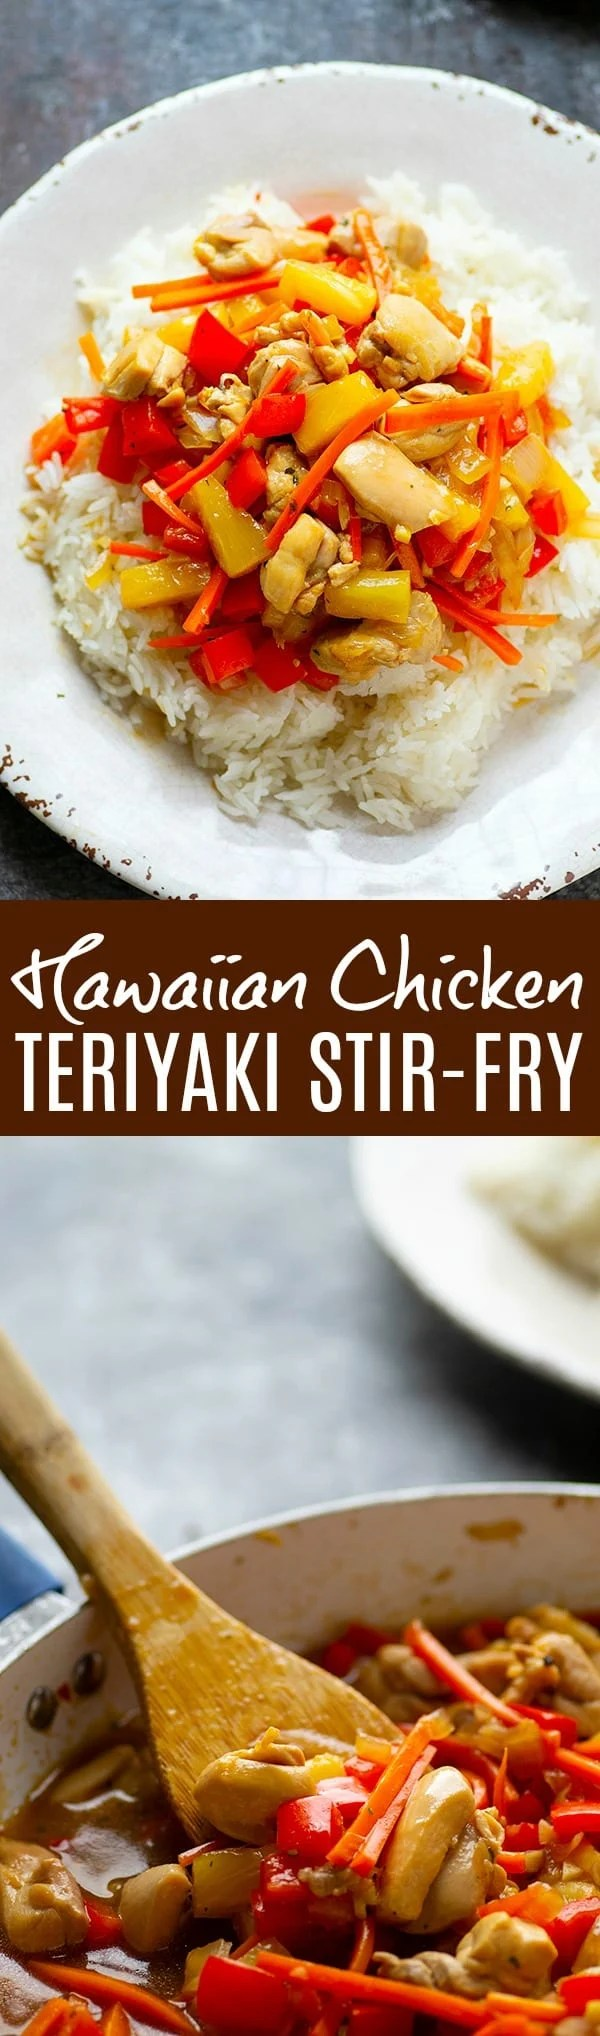 Hawaiian Chicken Teriyaki Stir-Fry - Packed with sweet tropical teriyaki flavors and made in less than an hour, this Hawaiian chicken teriyaki stir-fry will quickly become a permanent dinner item!